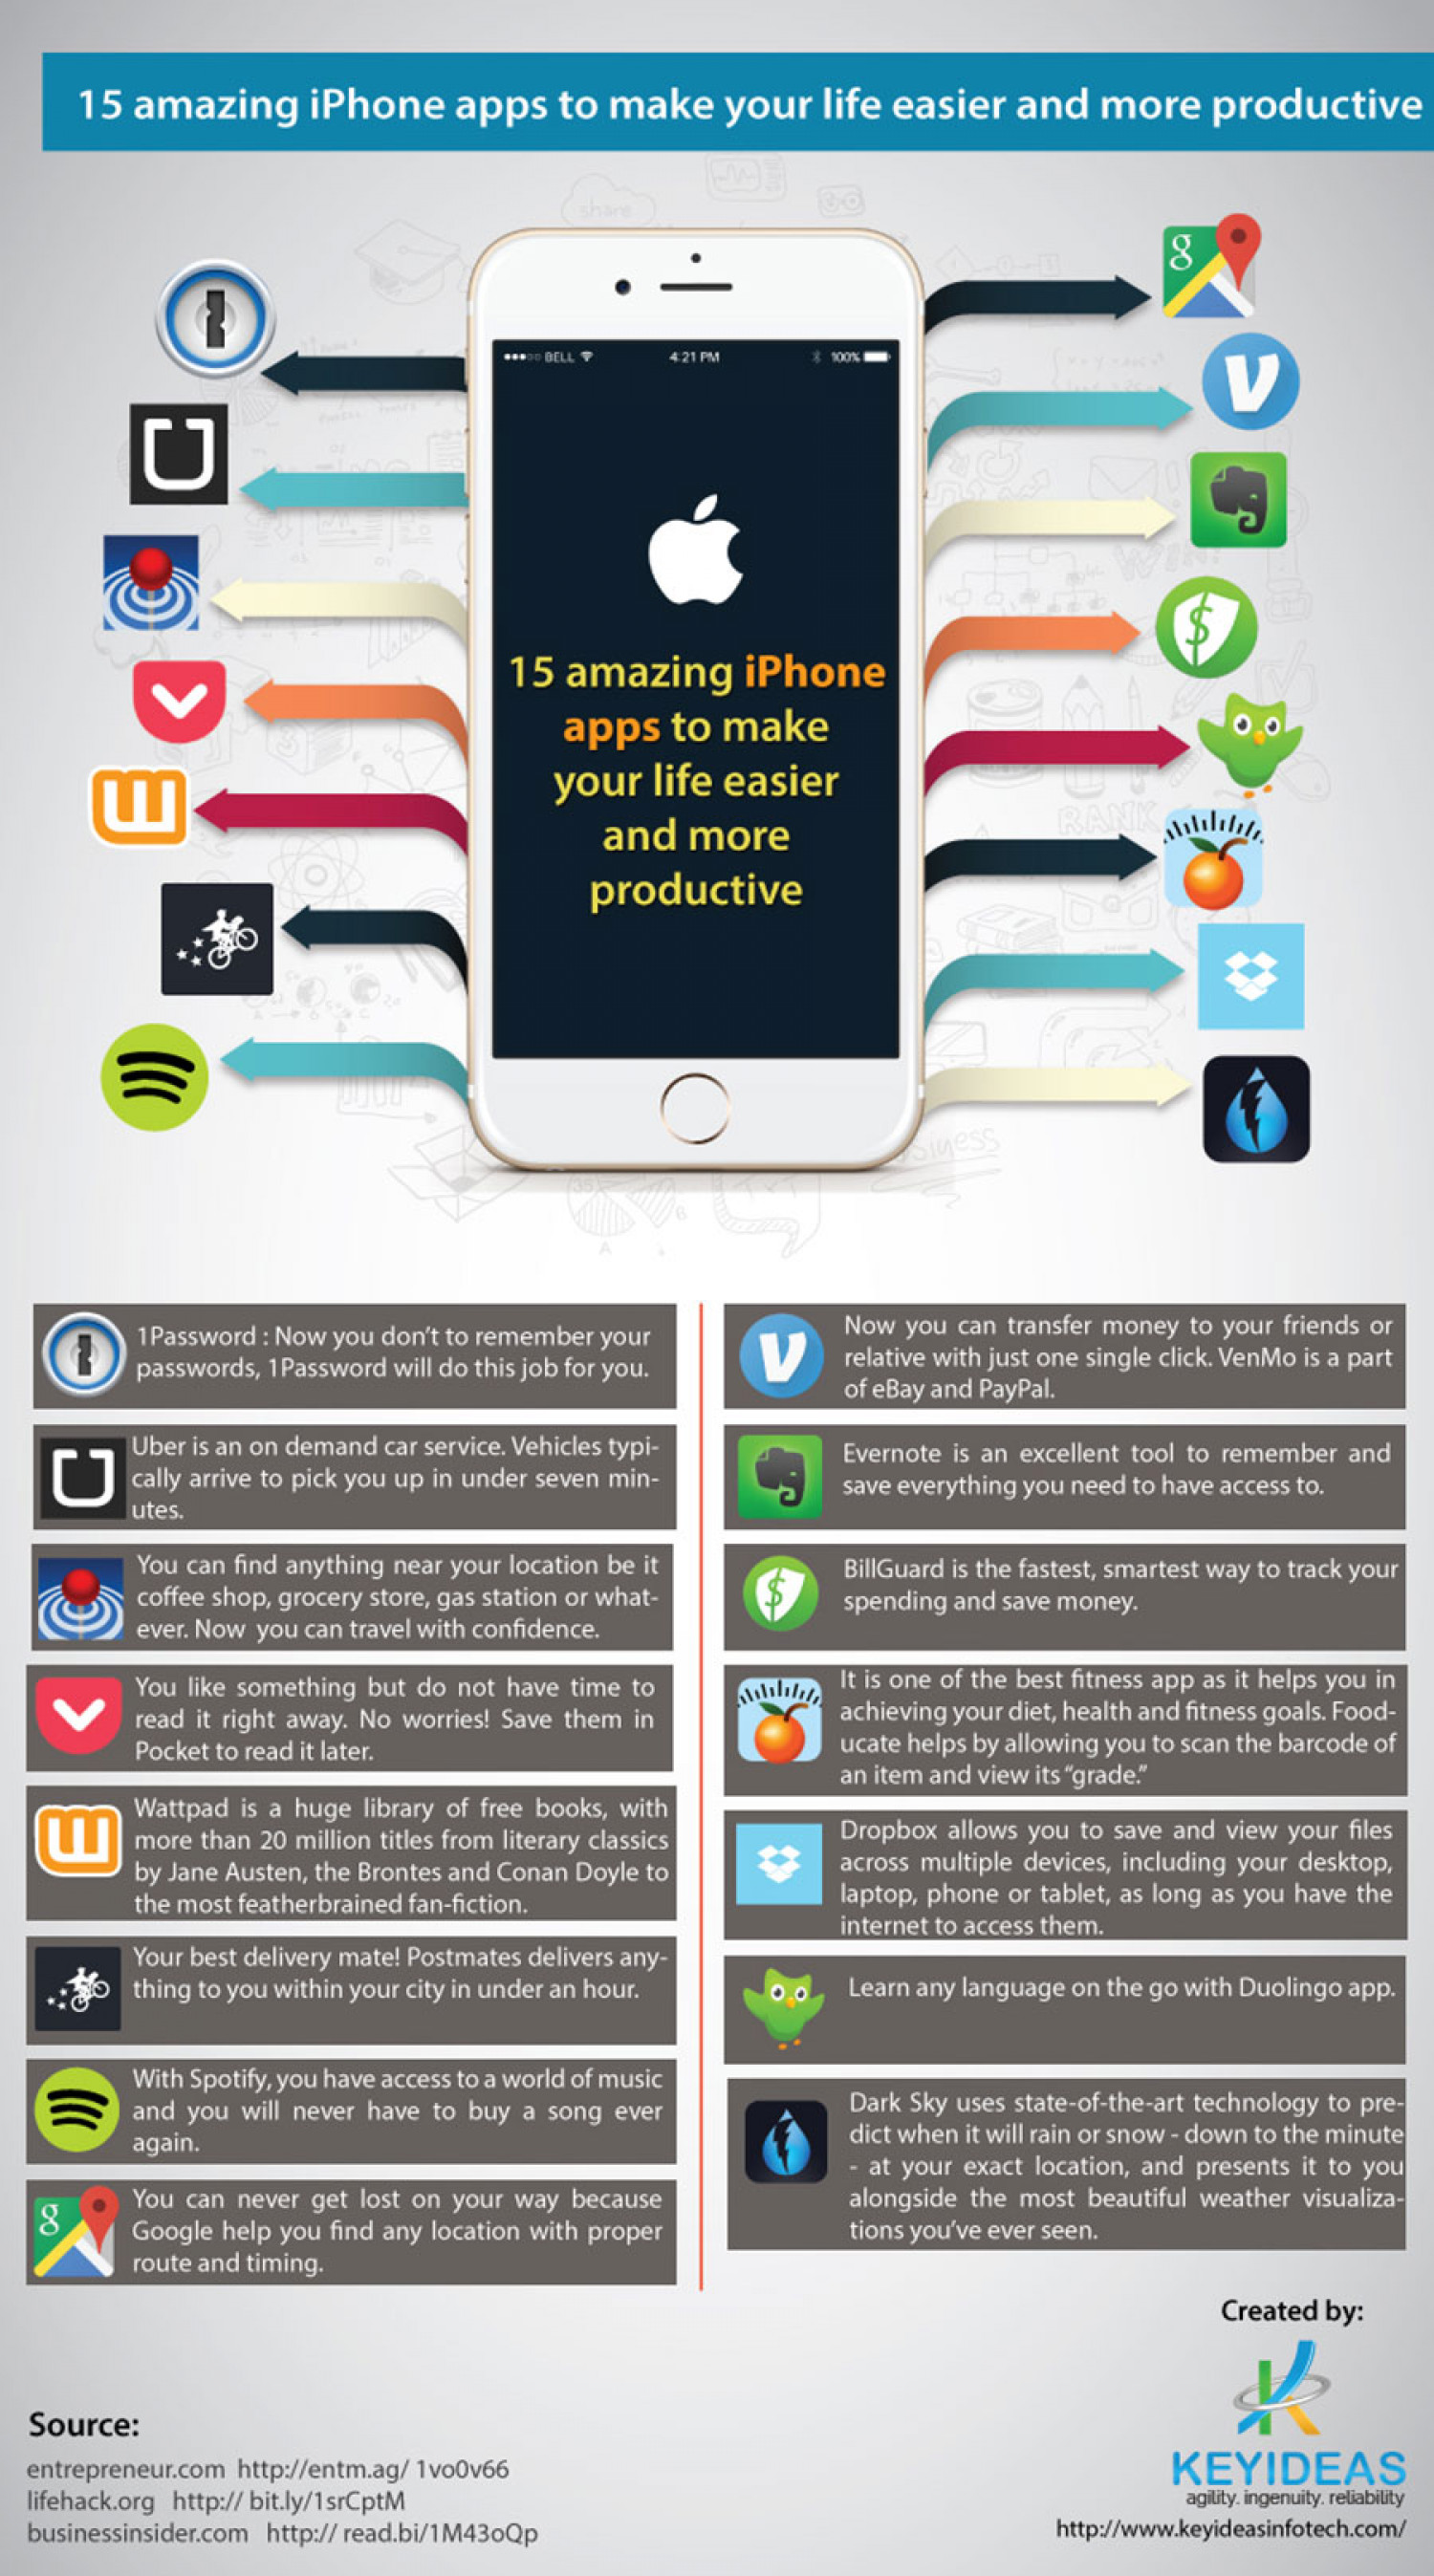 15 Amazing iPhone Apps to Make your Life Easier and more Productive  Infographic